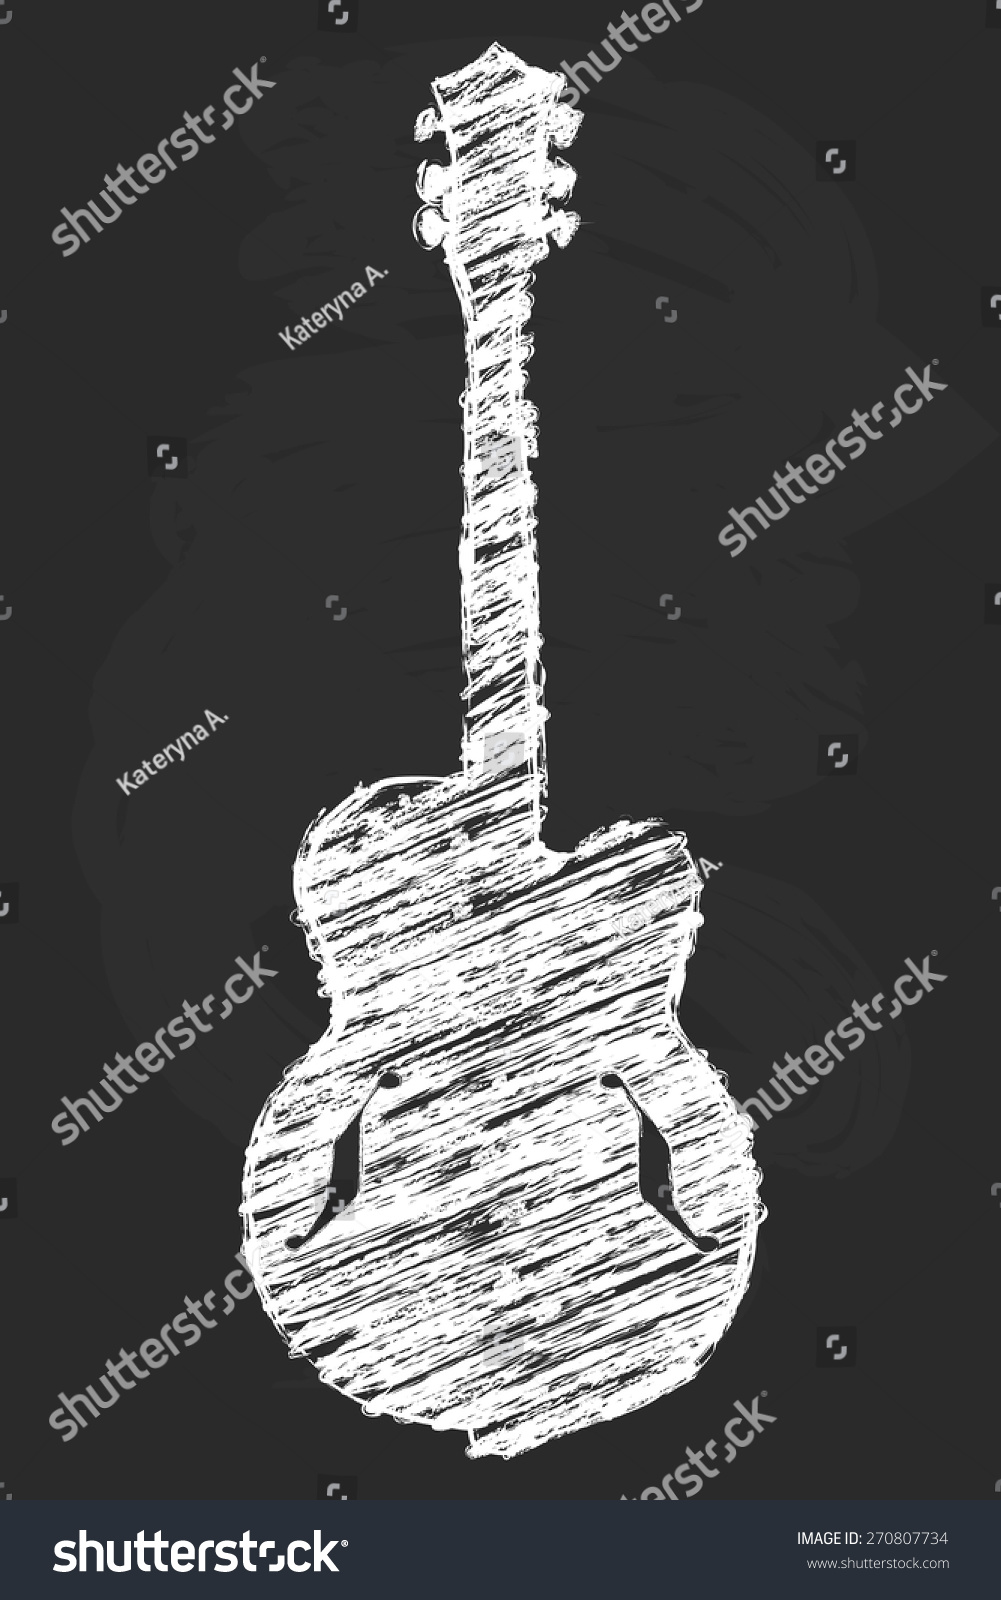 Chalk Art Semi Acoustic Guitar Vector Stock Vector Royalty Free